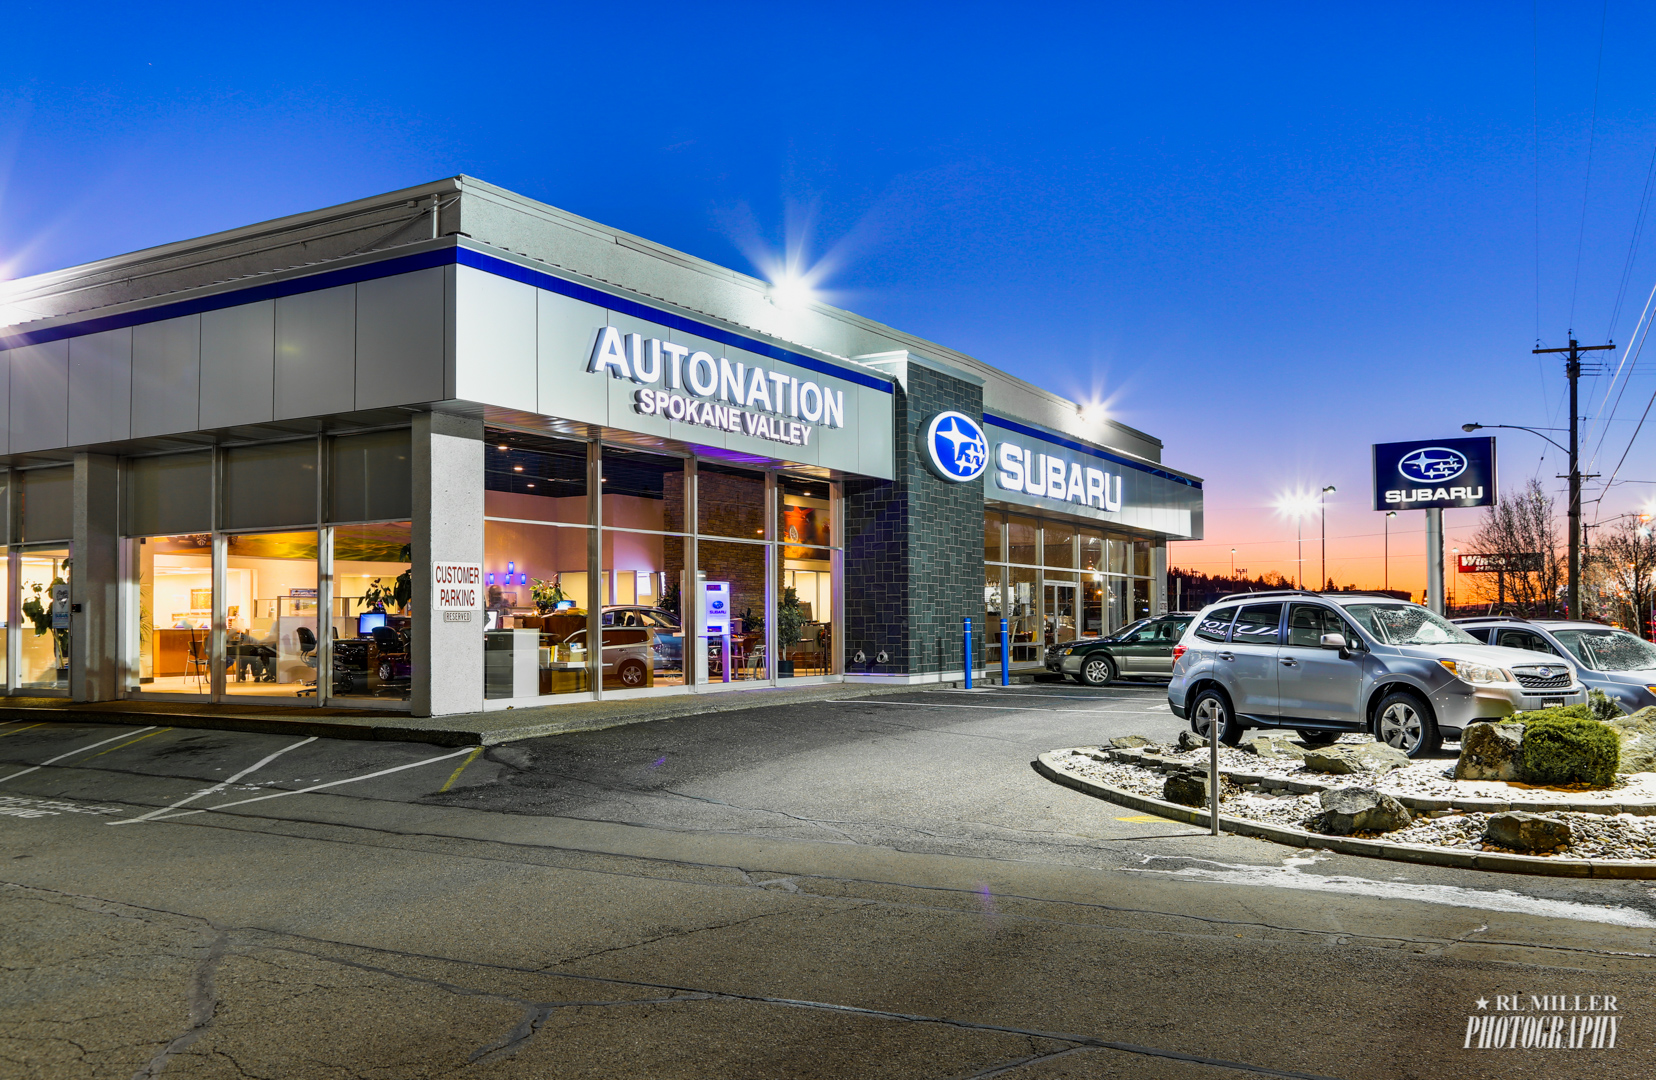 Autonation Subaru Spokane